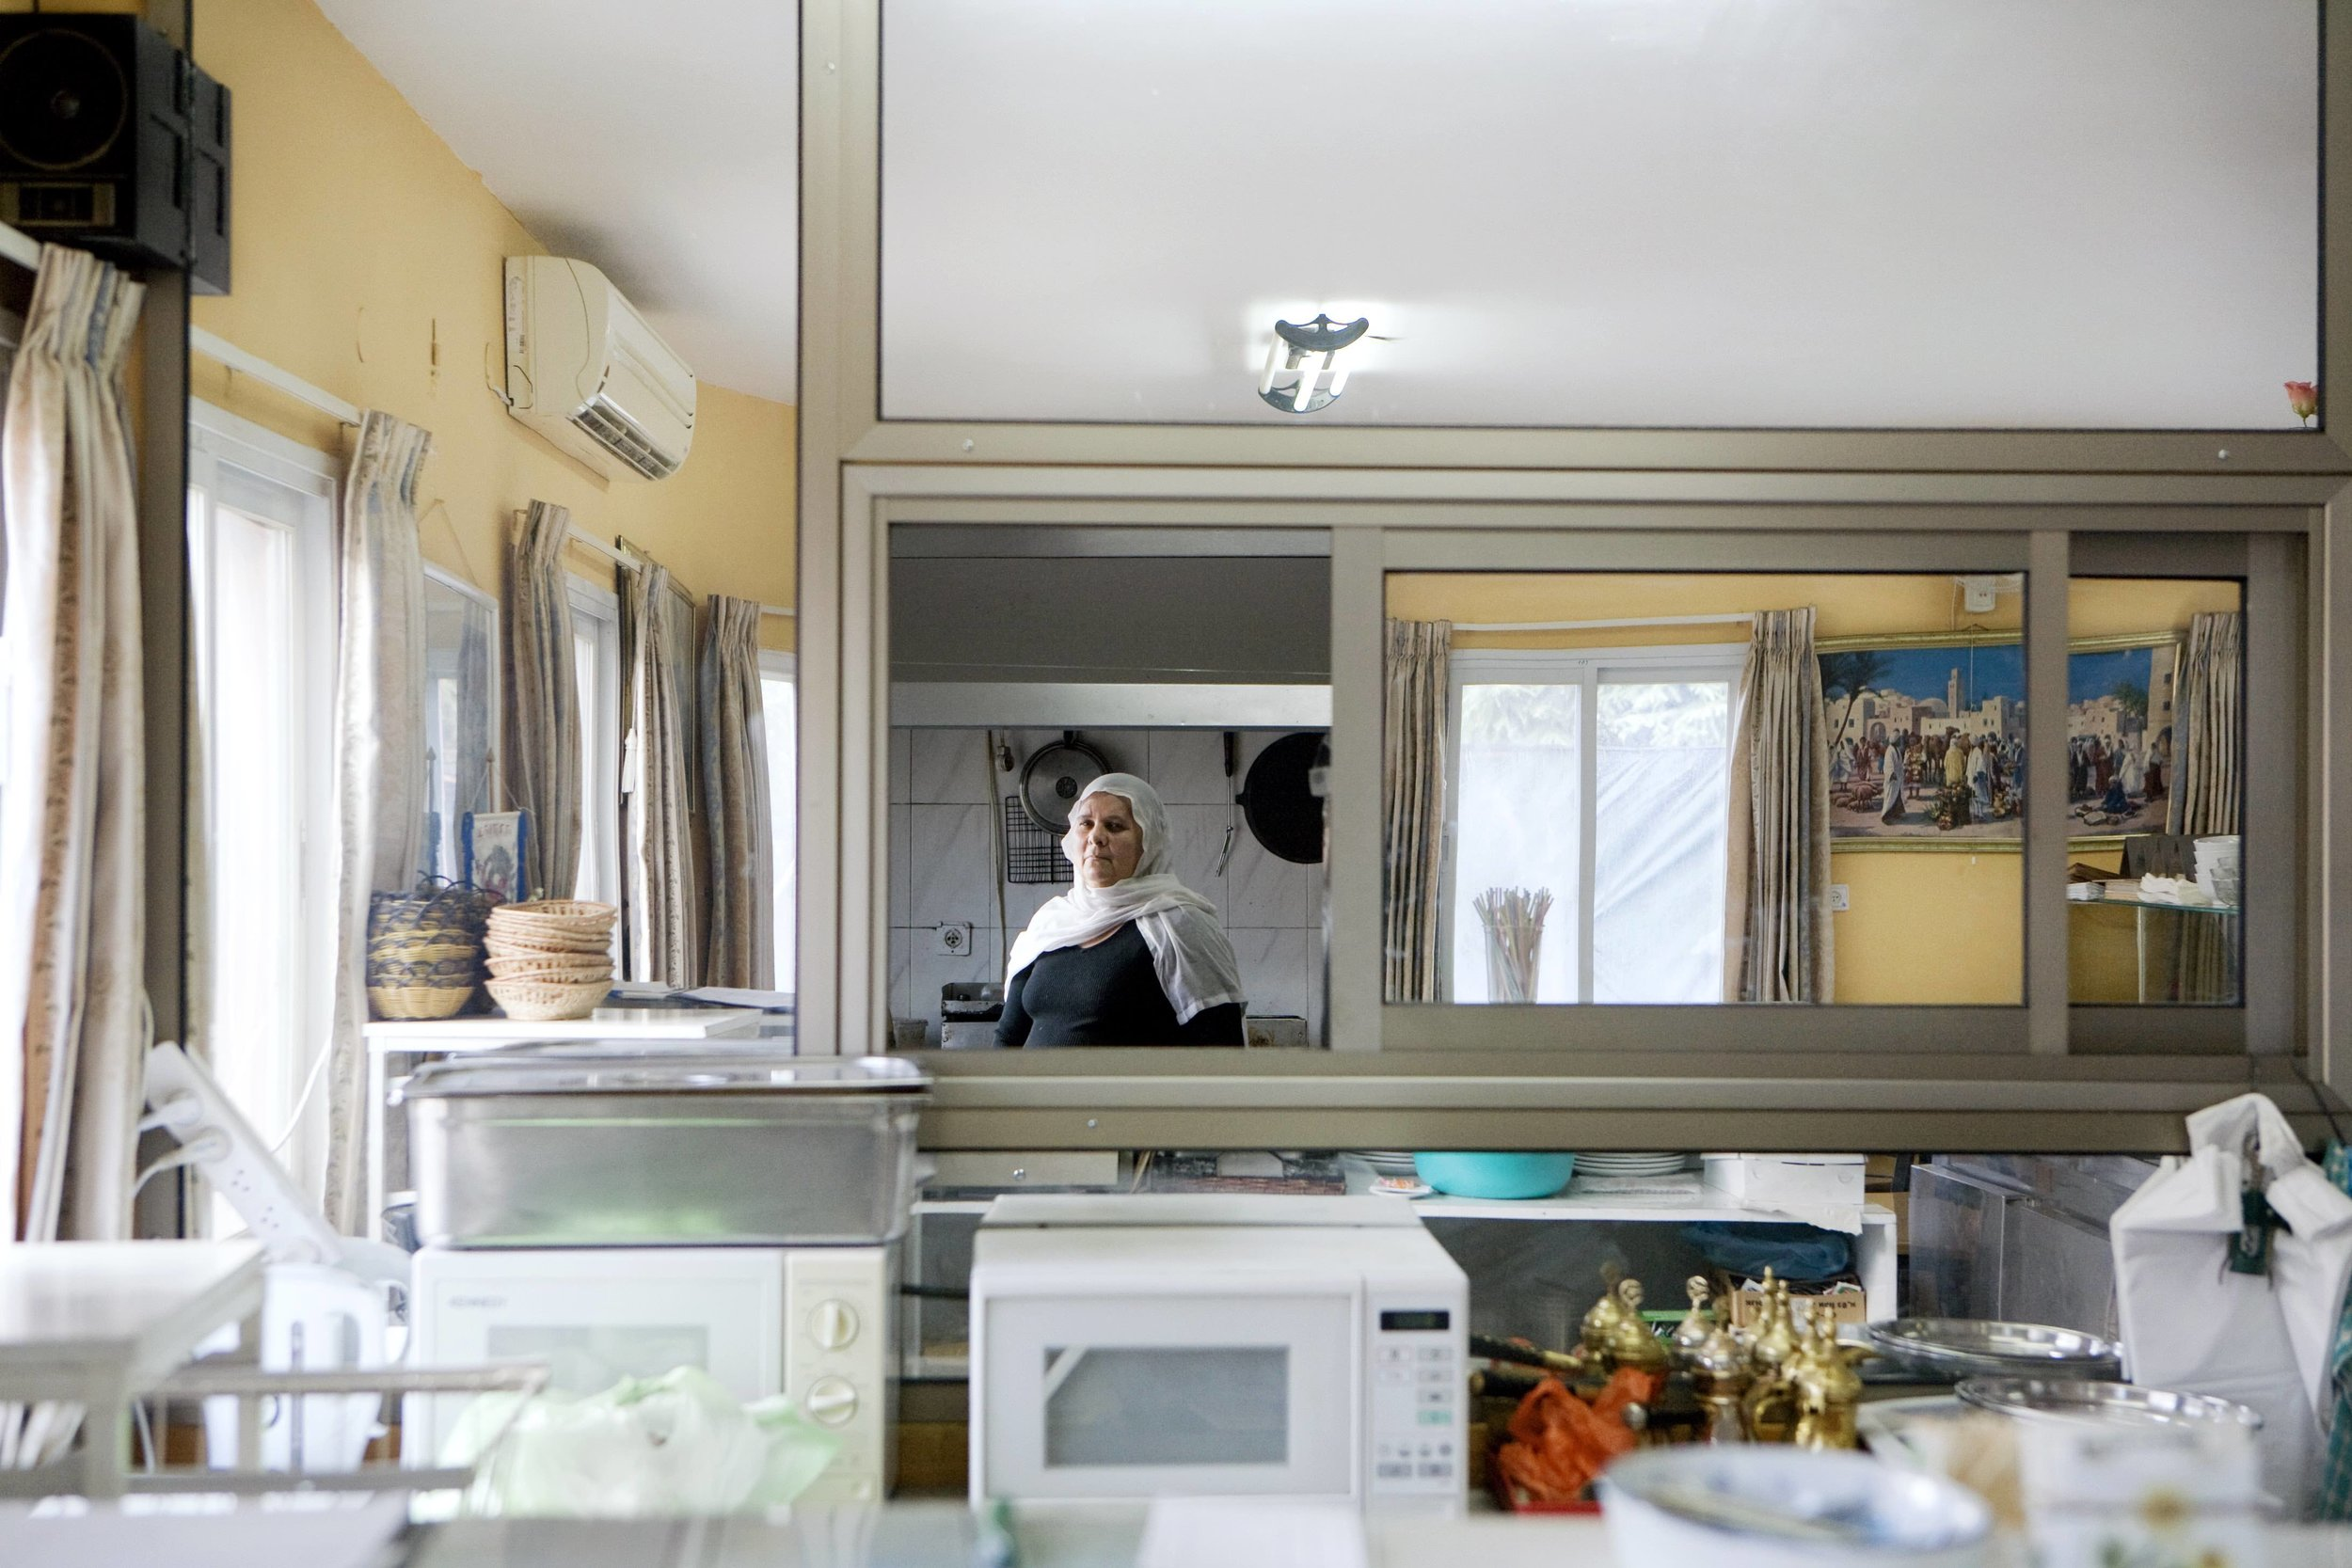 A Druze woman behind the restaurant counter  / Galilee, North of Israel 2012